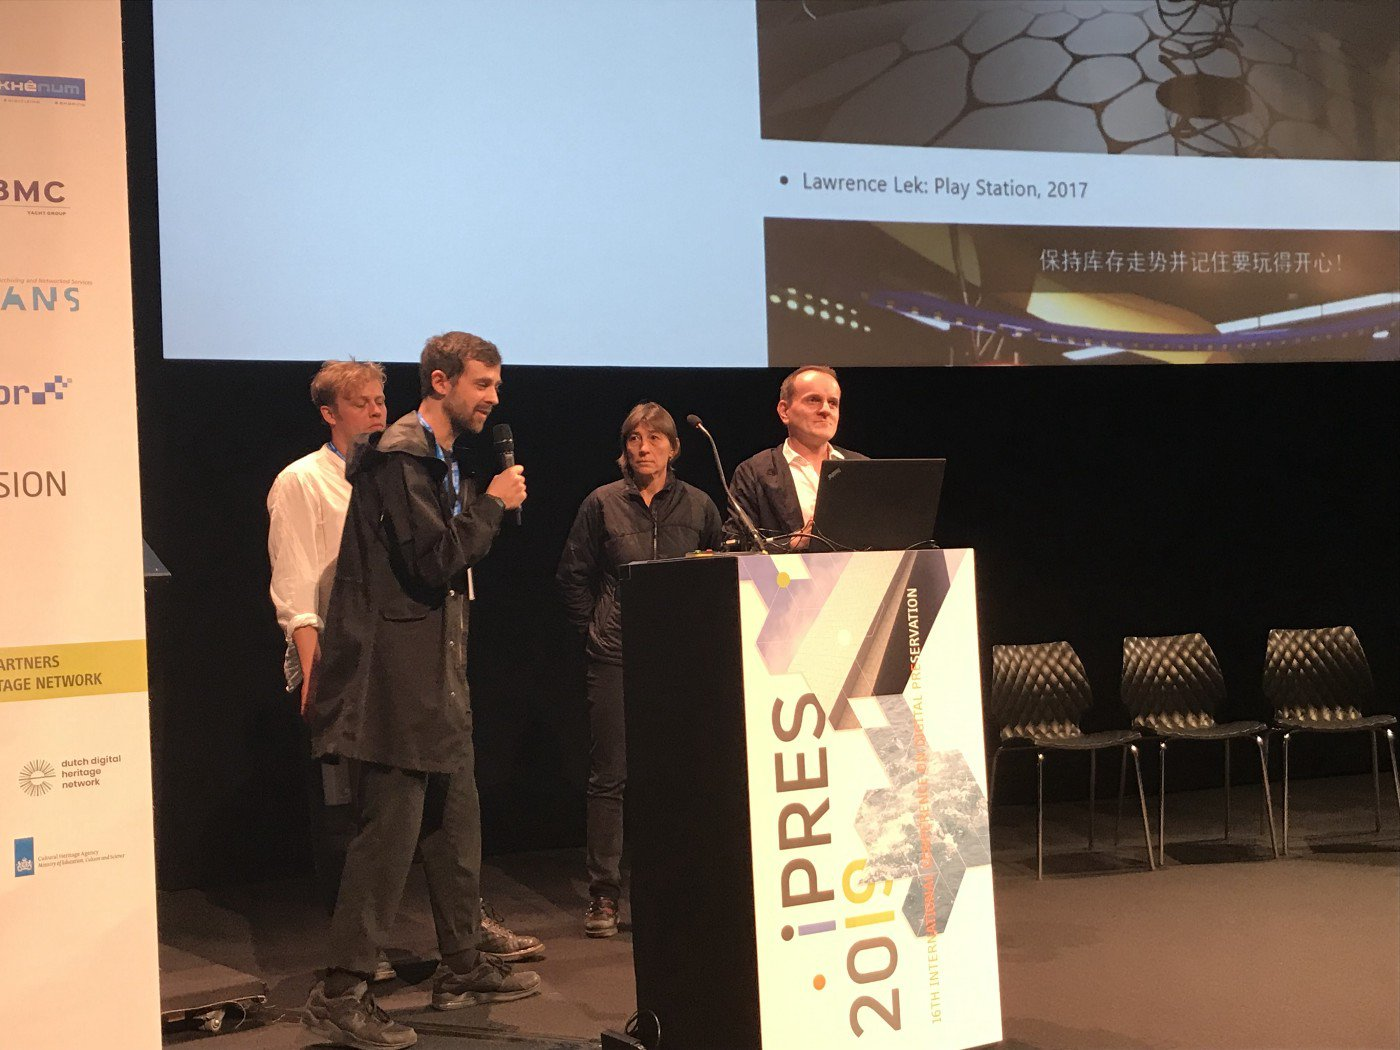 Tom Ensom, Jack McConchie, Claudia Roeck and Dragan Espenschied present some of the VR hackathon findings at iPres 2019